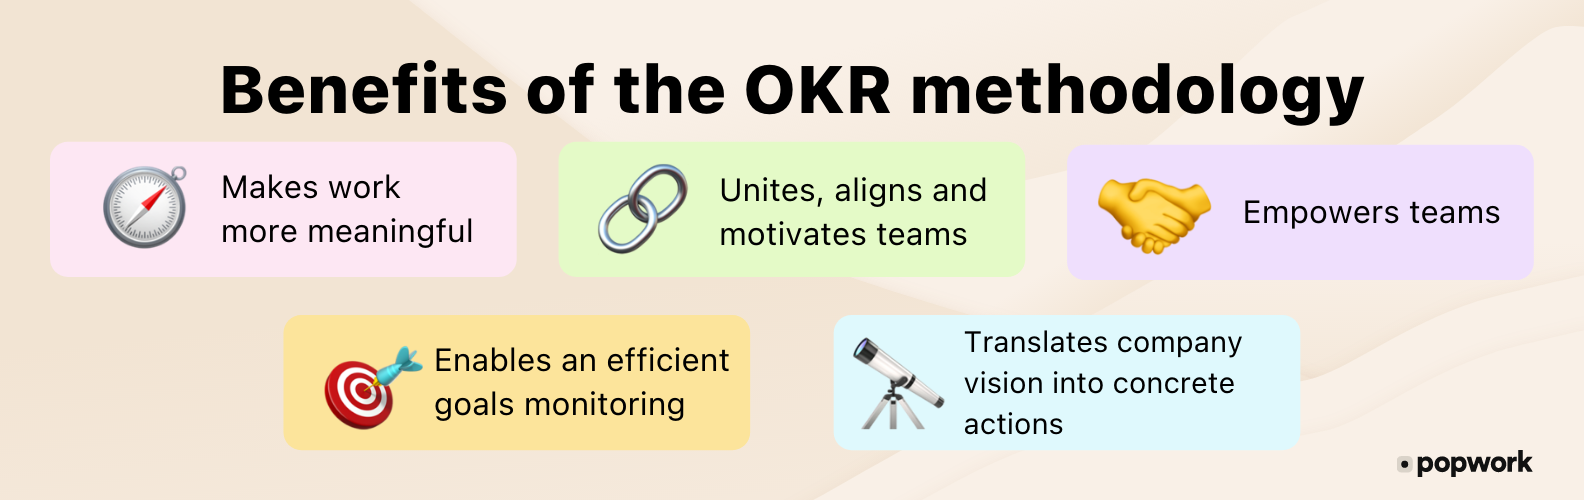 Benefits of the OKR methodology : Makes work more meaningful, Unites, aligns and motivates teams, Empowers teams, Enables an efficient goals monitoring, Translates company vision into concrete actions - Popwork